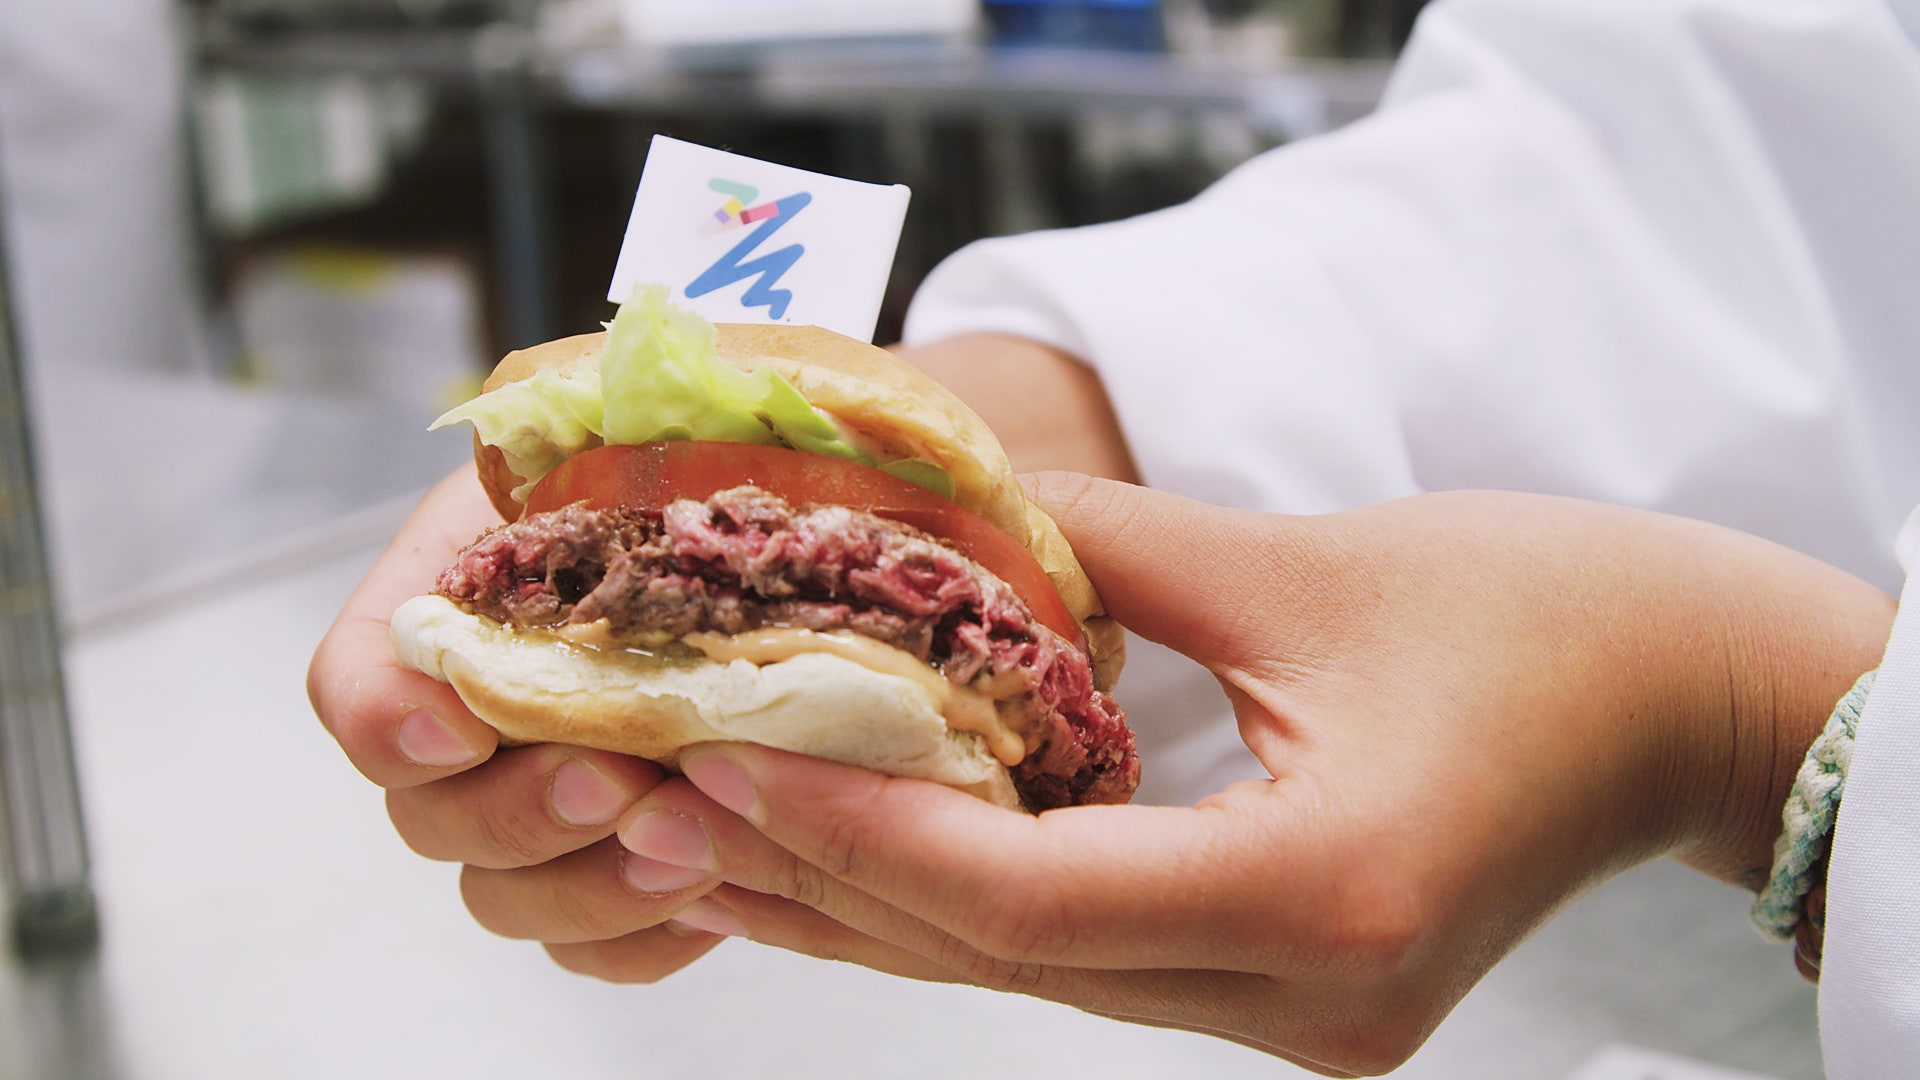 The Impossible Burger Inside the Strange Science of the Fake Meat 1920x1080